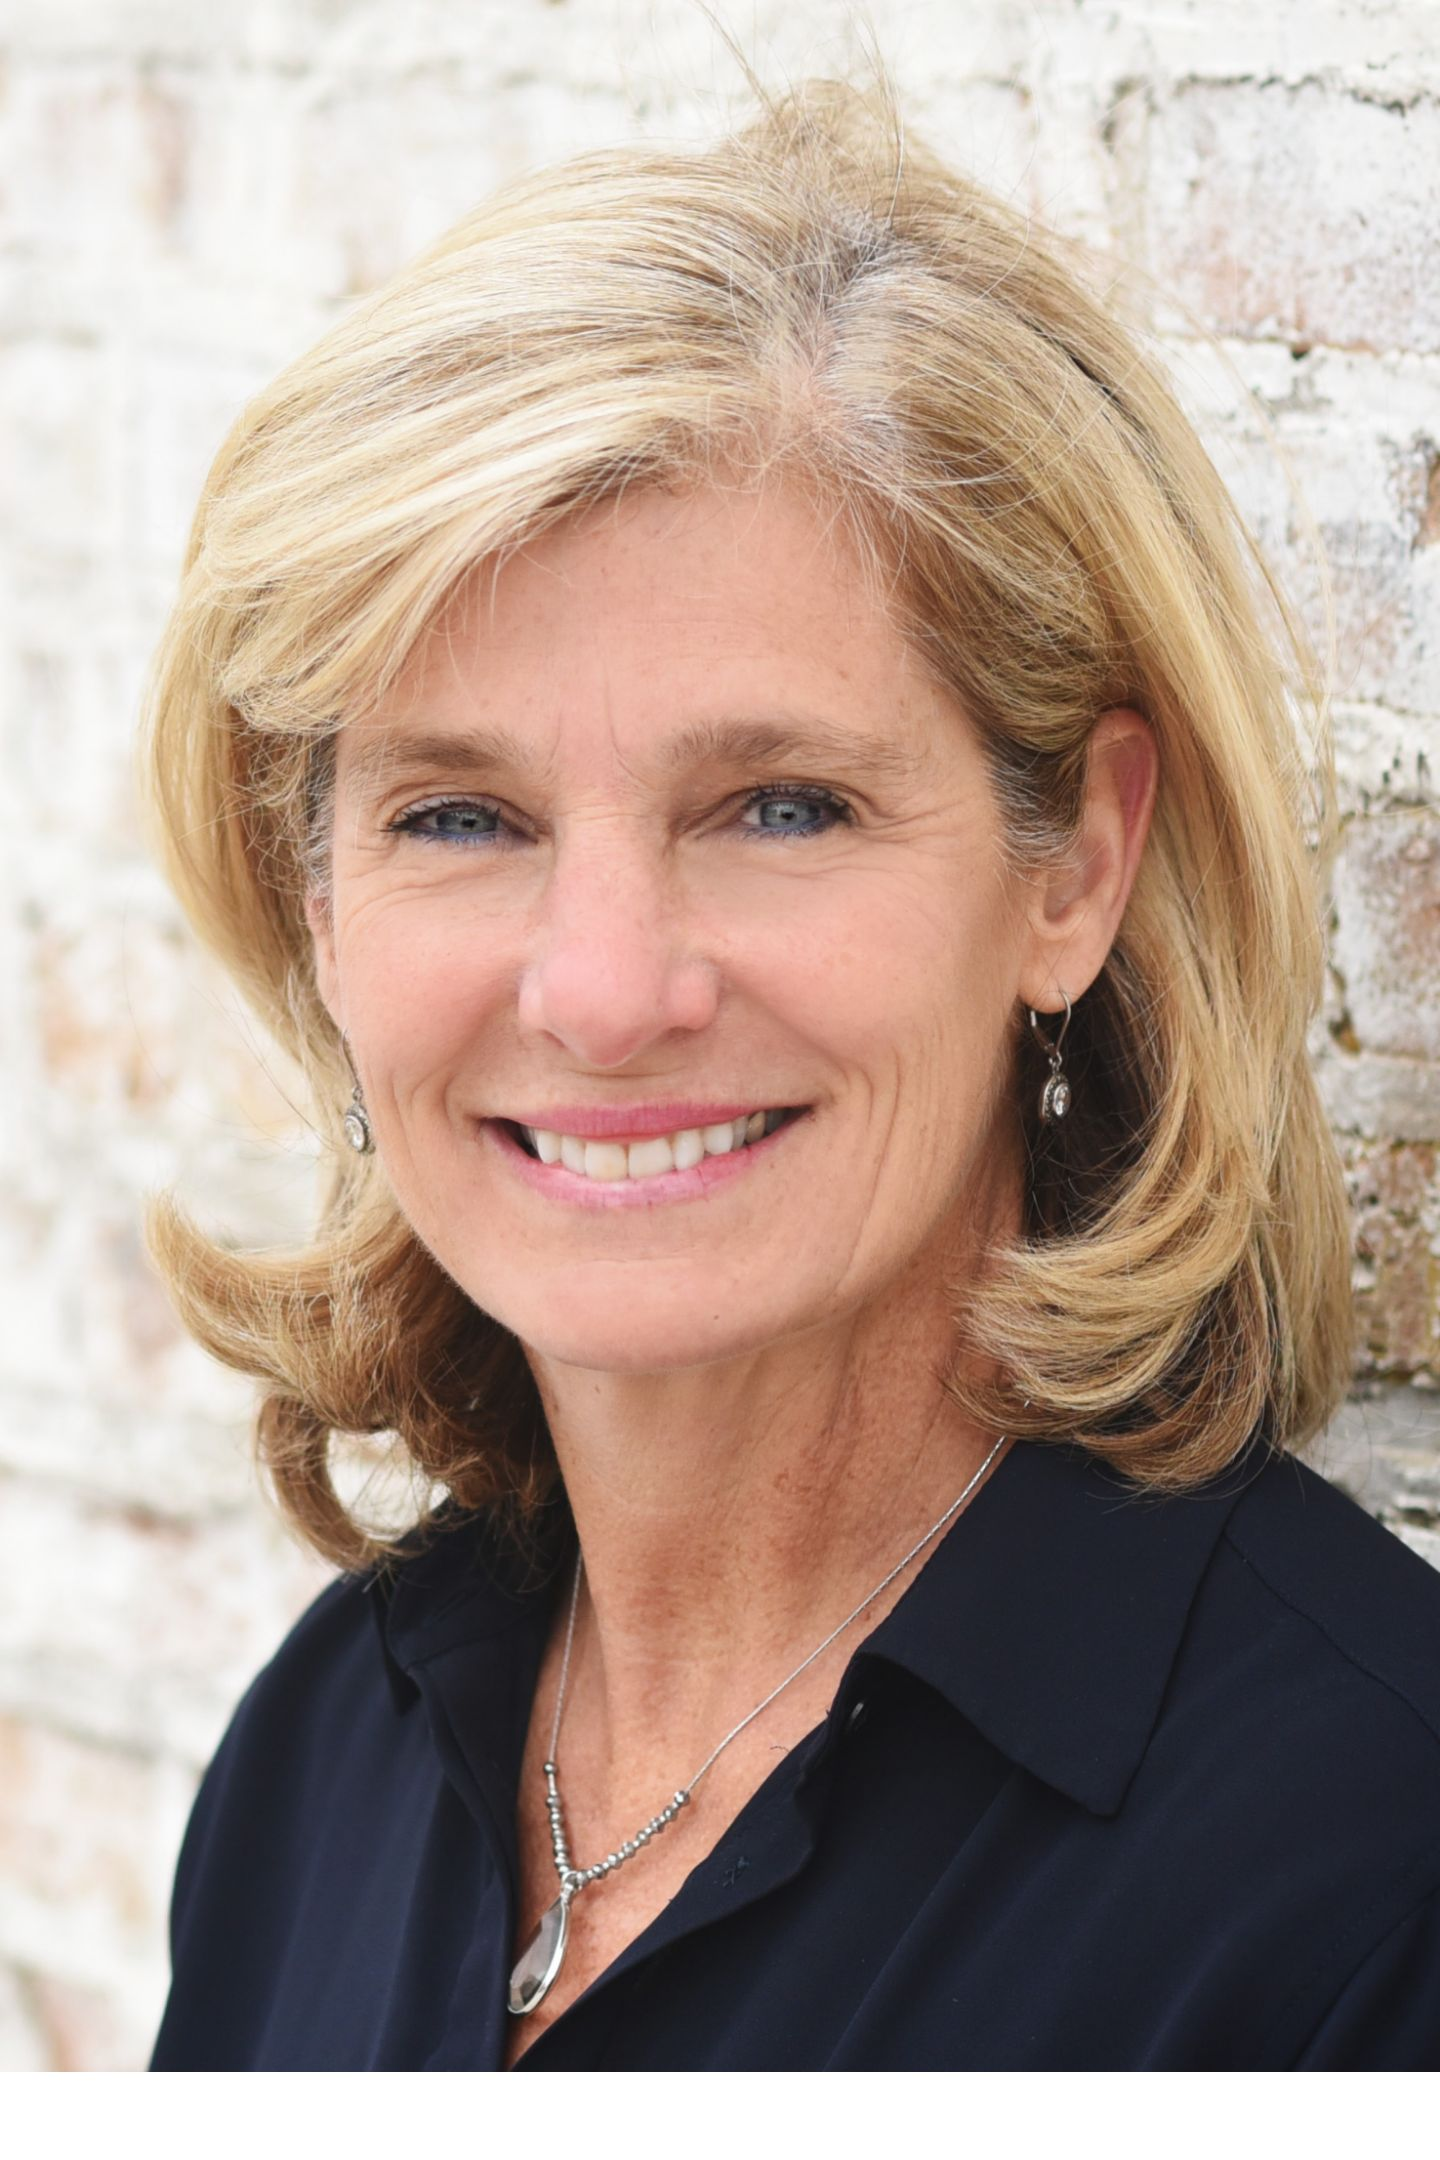 Peggy Smego, Real Estate Agent - Hinsdale, IL - Coldwell ...